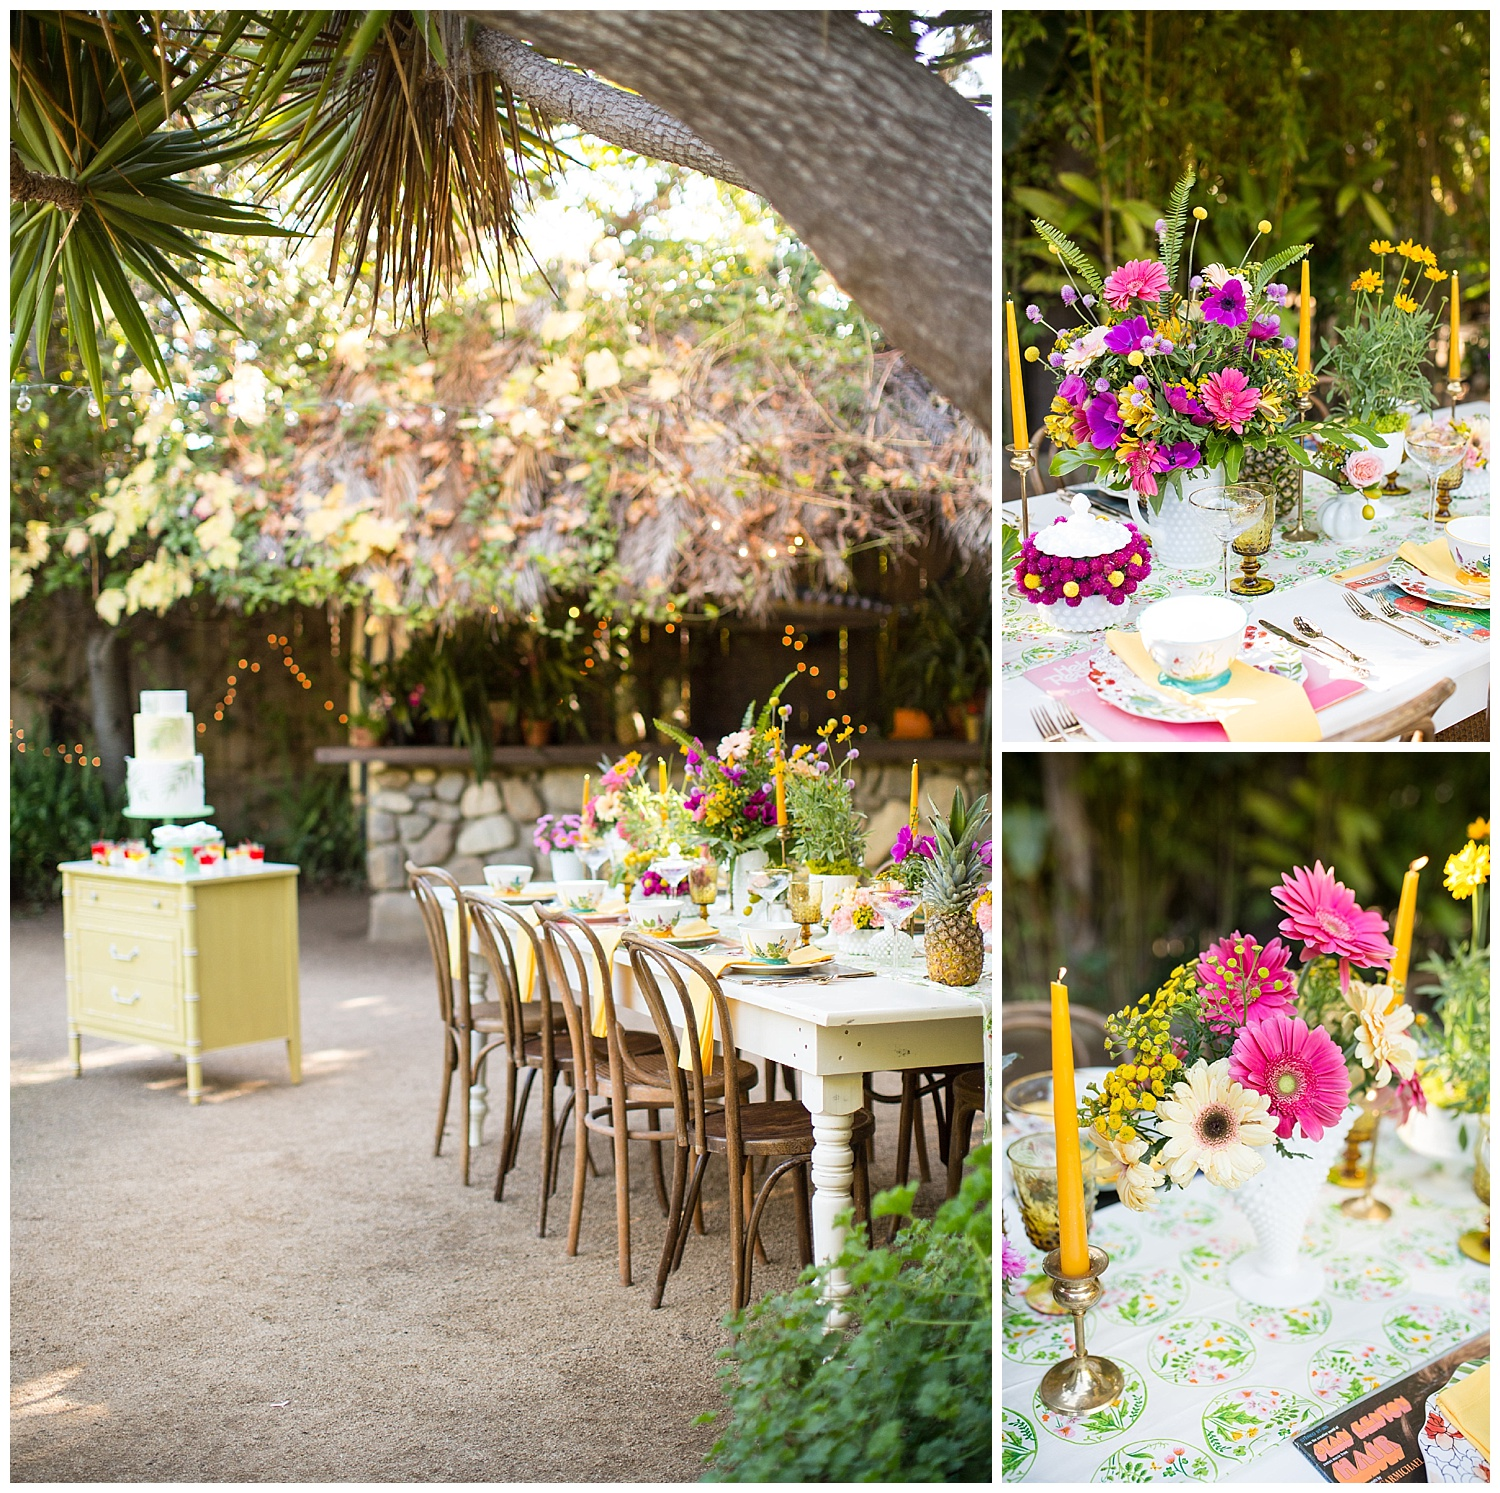 Bright-wedding-colors-garden-party-summer-of-love.jpg